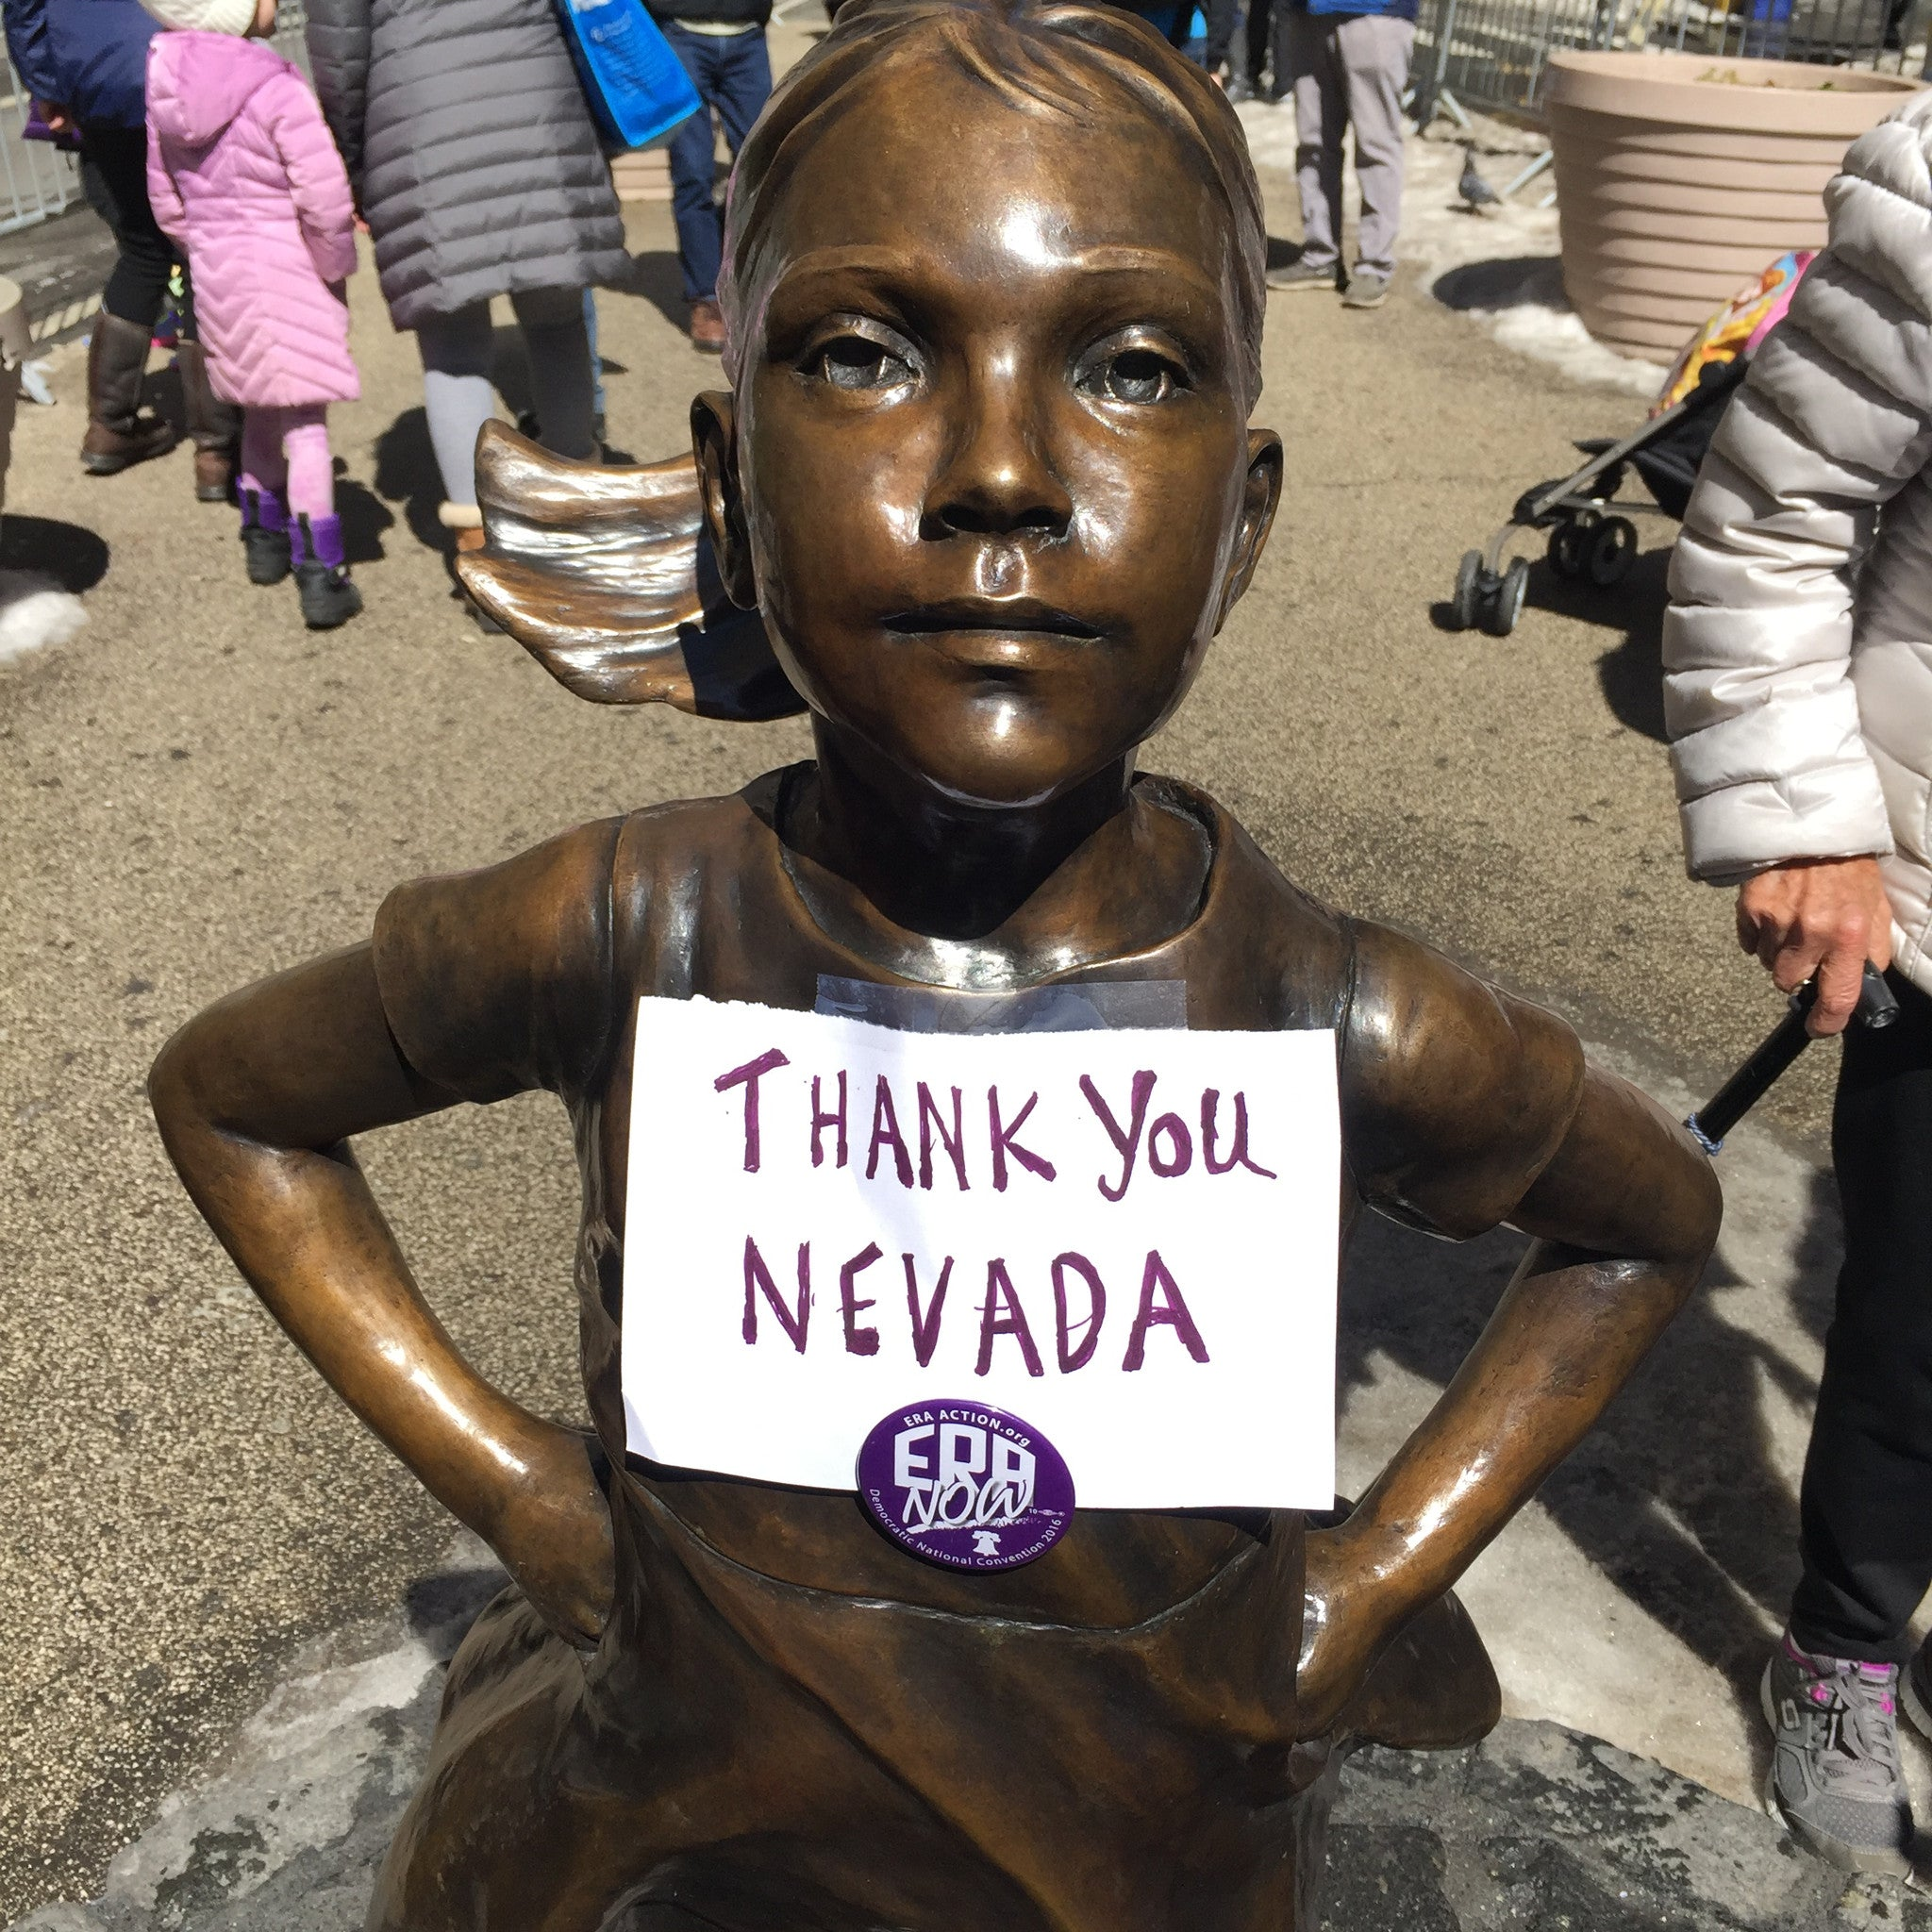 Historic Moment for US Women Nevada becomes the 36th State to ratify the Equal Rights Amendment